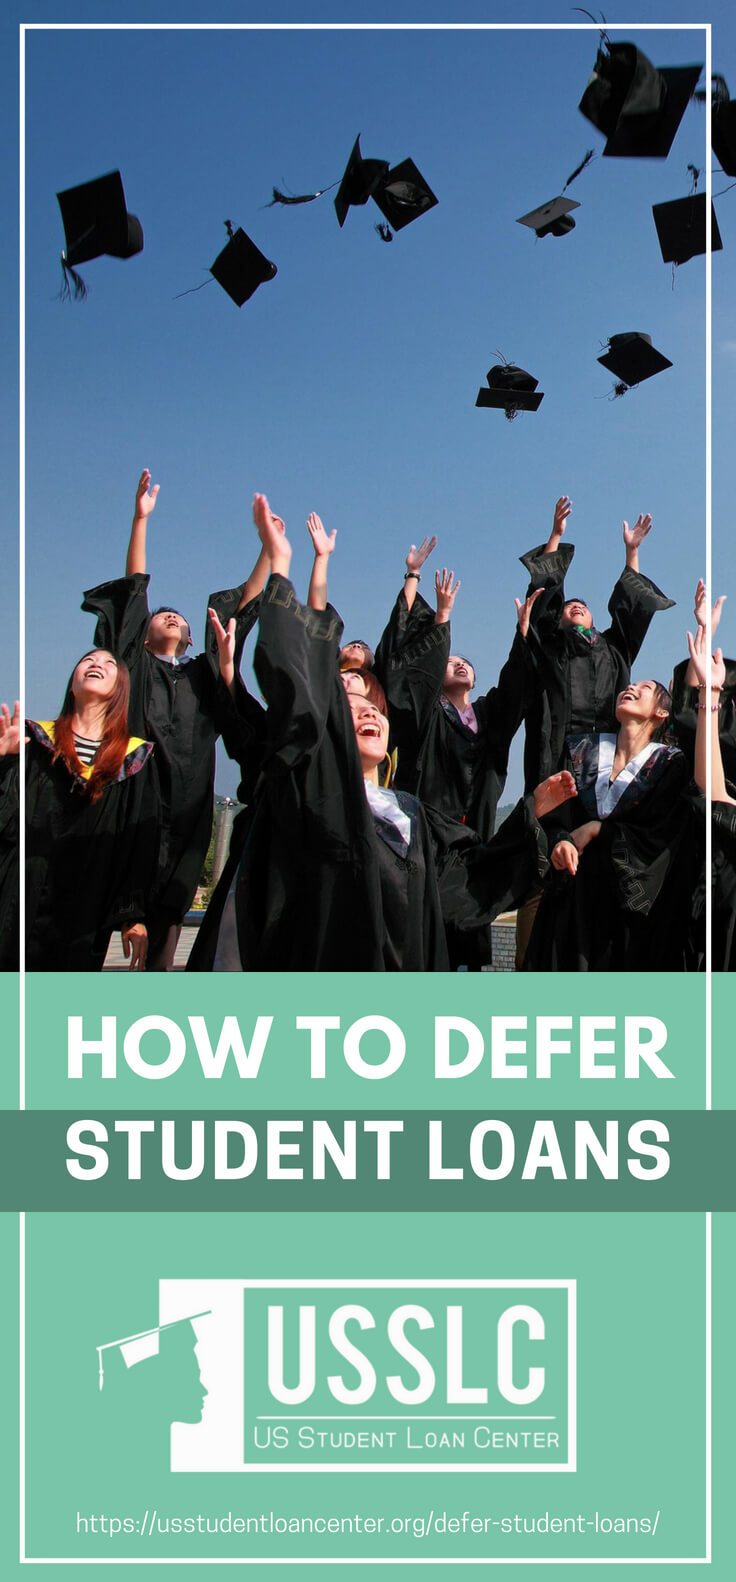 How to Defer Student Loans